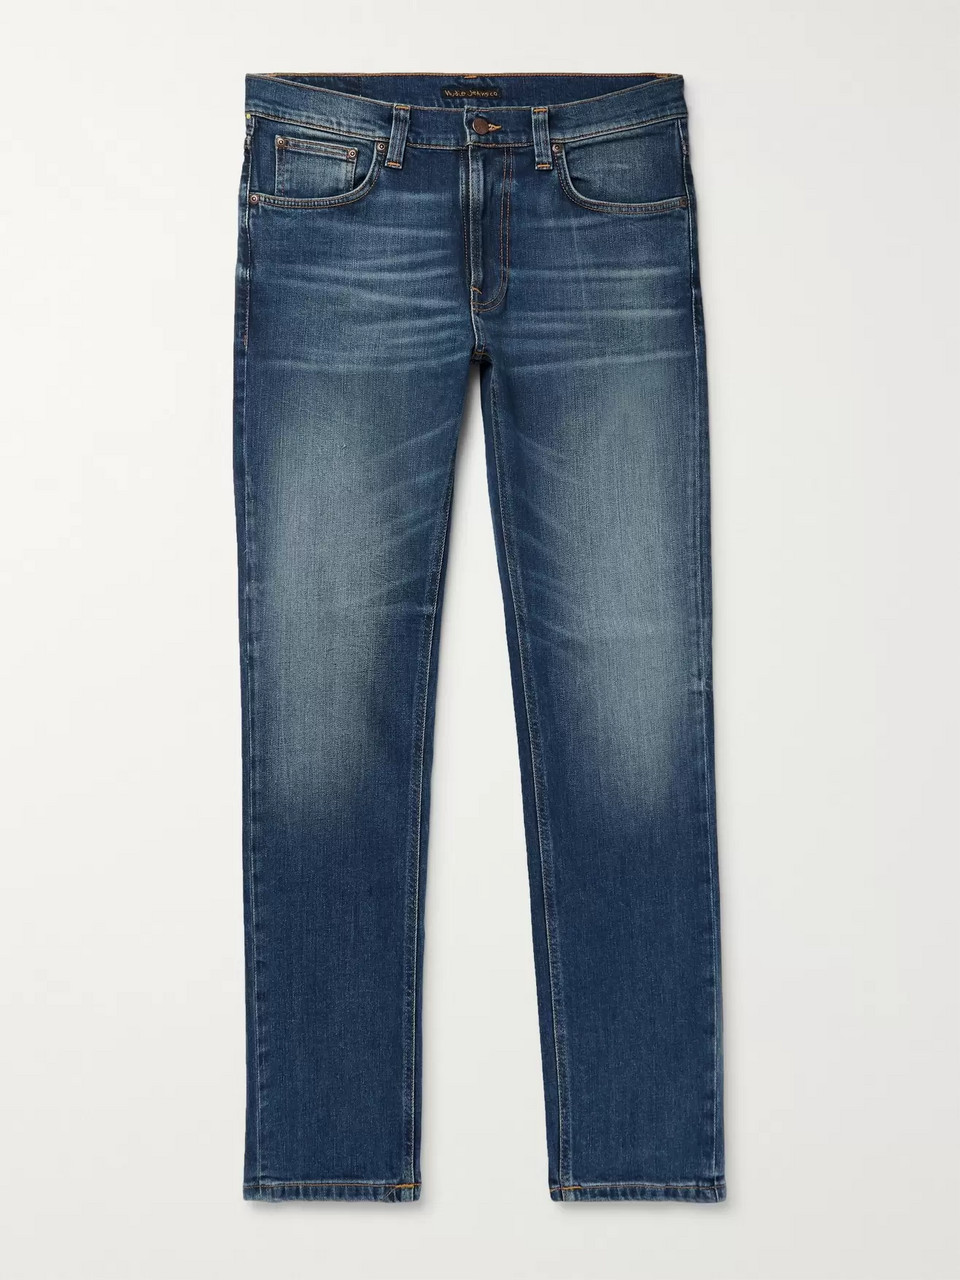 Nudie Jeans Lean Dean Slim-Fit Tapered Organic Stretch-Denim Jeans